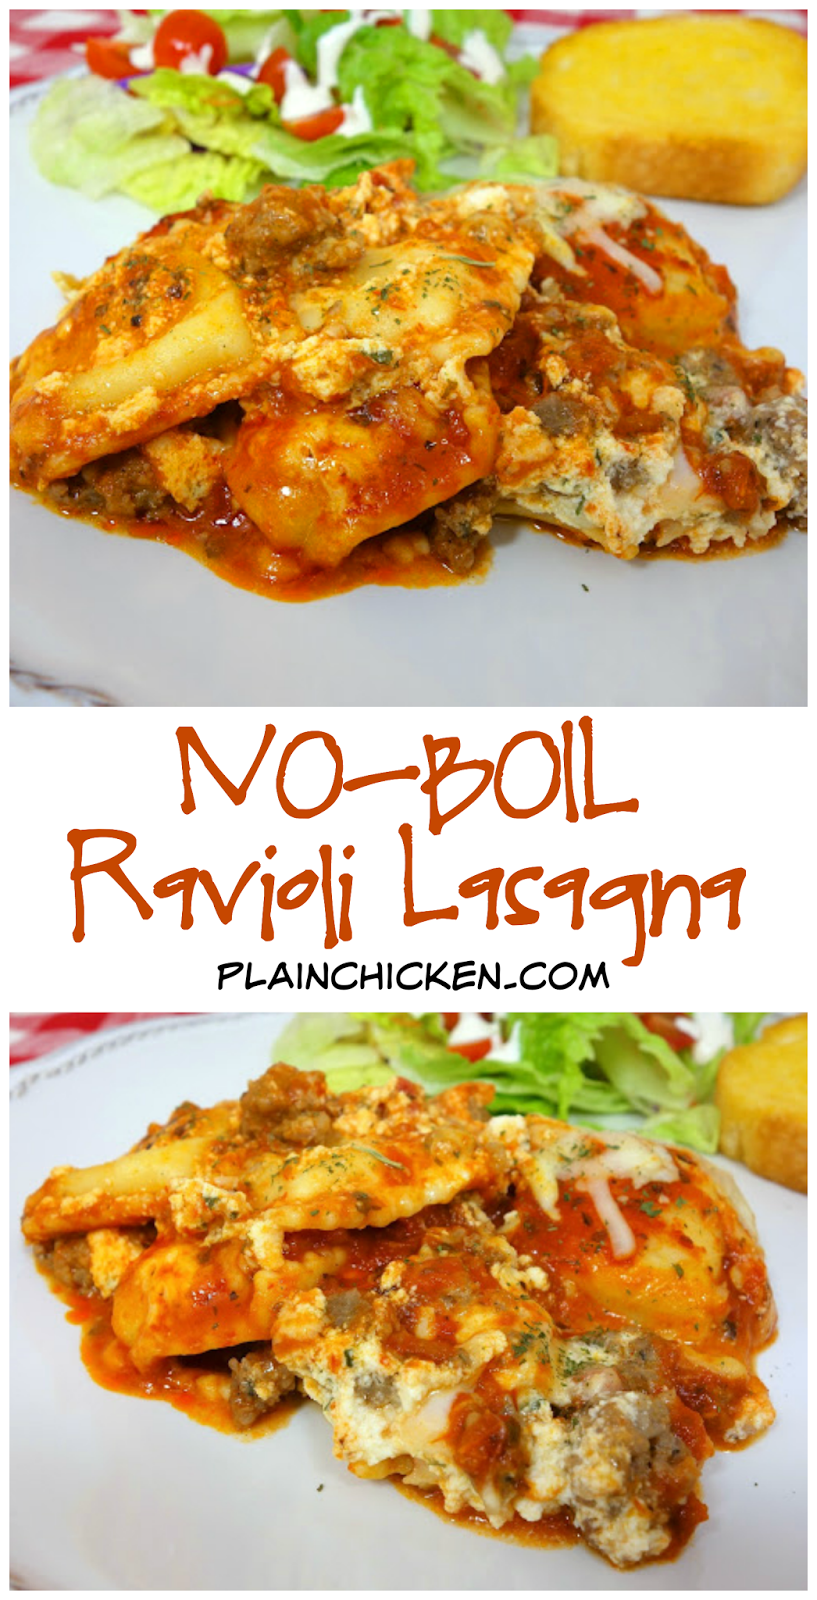 No-Boil Ravioli Lasagna recipe - frozen ravioli, spaghetti sauce, sausage/hamburger, ricotta, mozzarella - layer everything in a pan and bake. No need to precook the ravioli. Super quick casserole! Ready in 30 minutes. Make a great freezer meal! Assemble and freeze for later. Serve with a salad and crusty garlic bread for a quick weeknight meal.